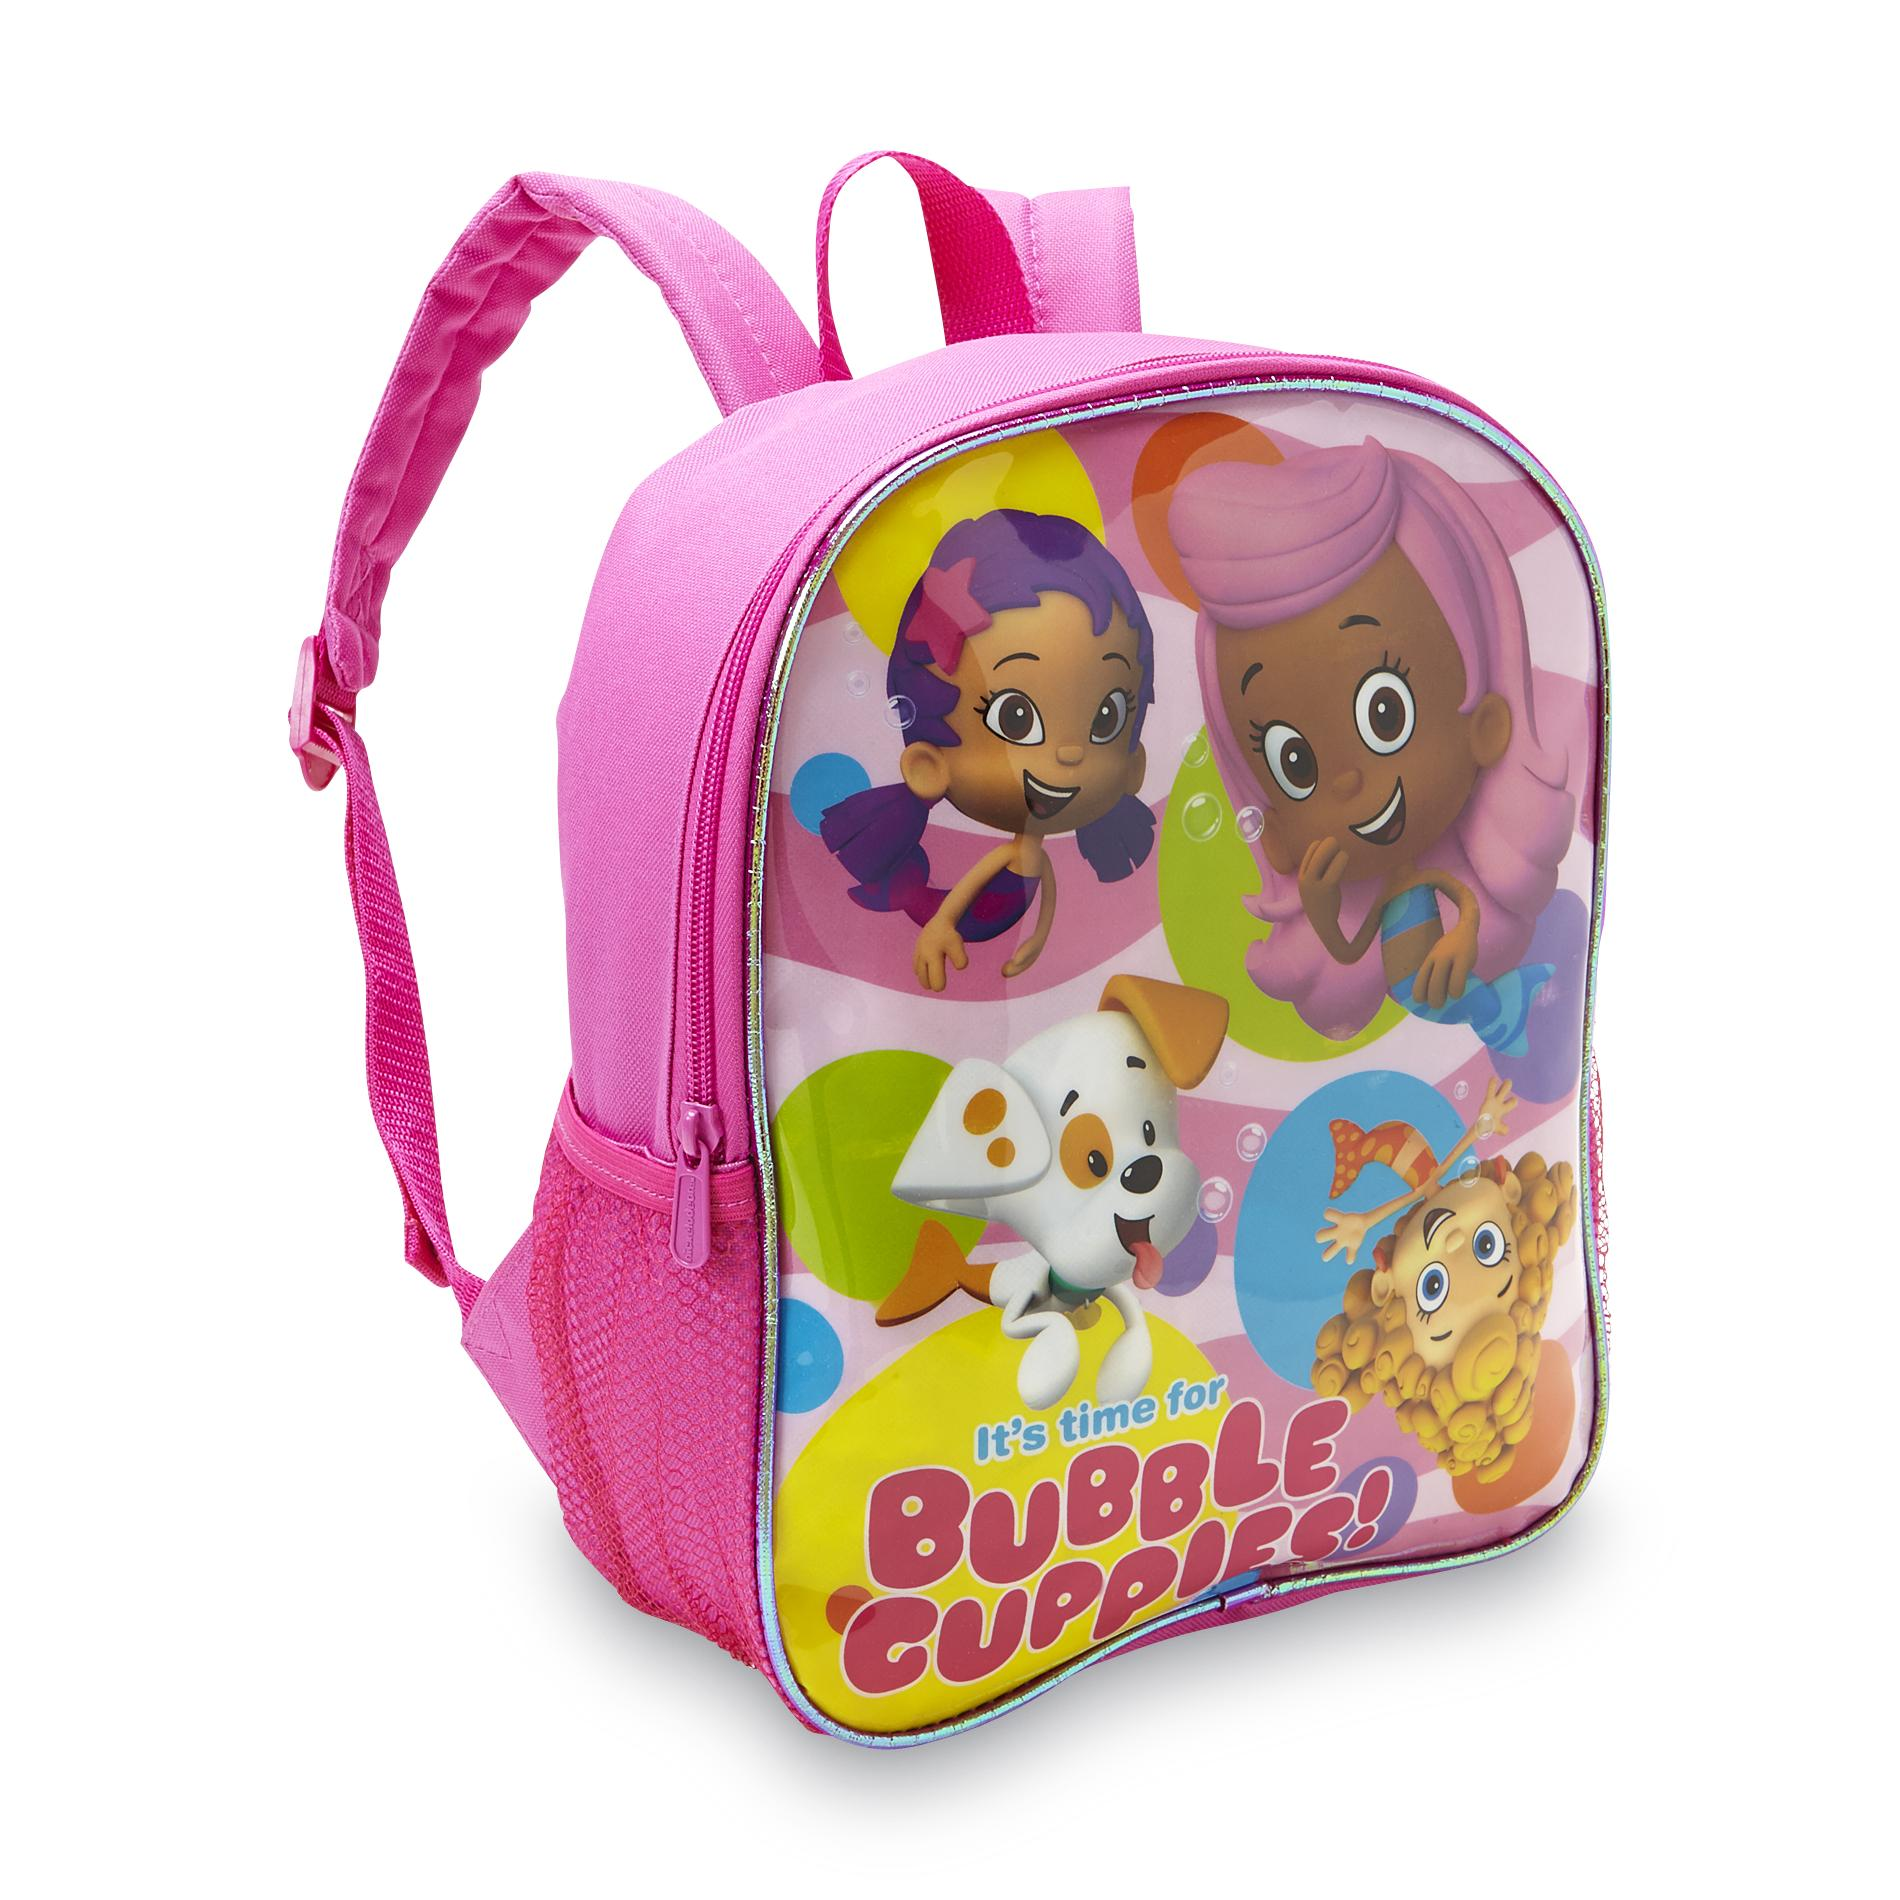 Nickelodeon Bubble Guppies Girl's Backpack